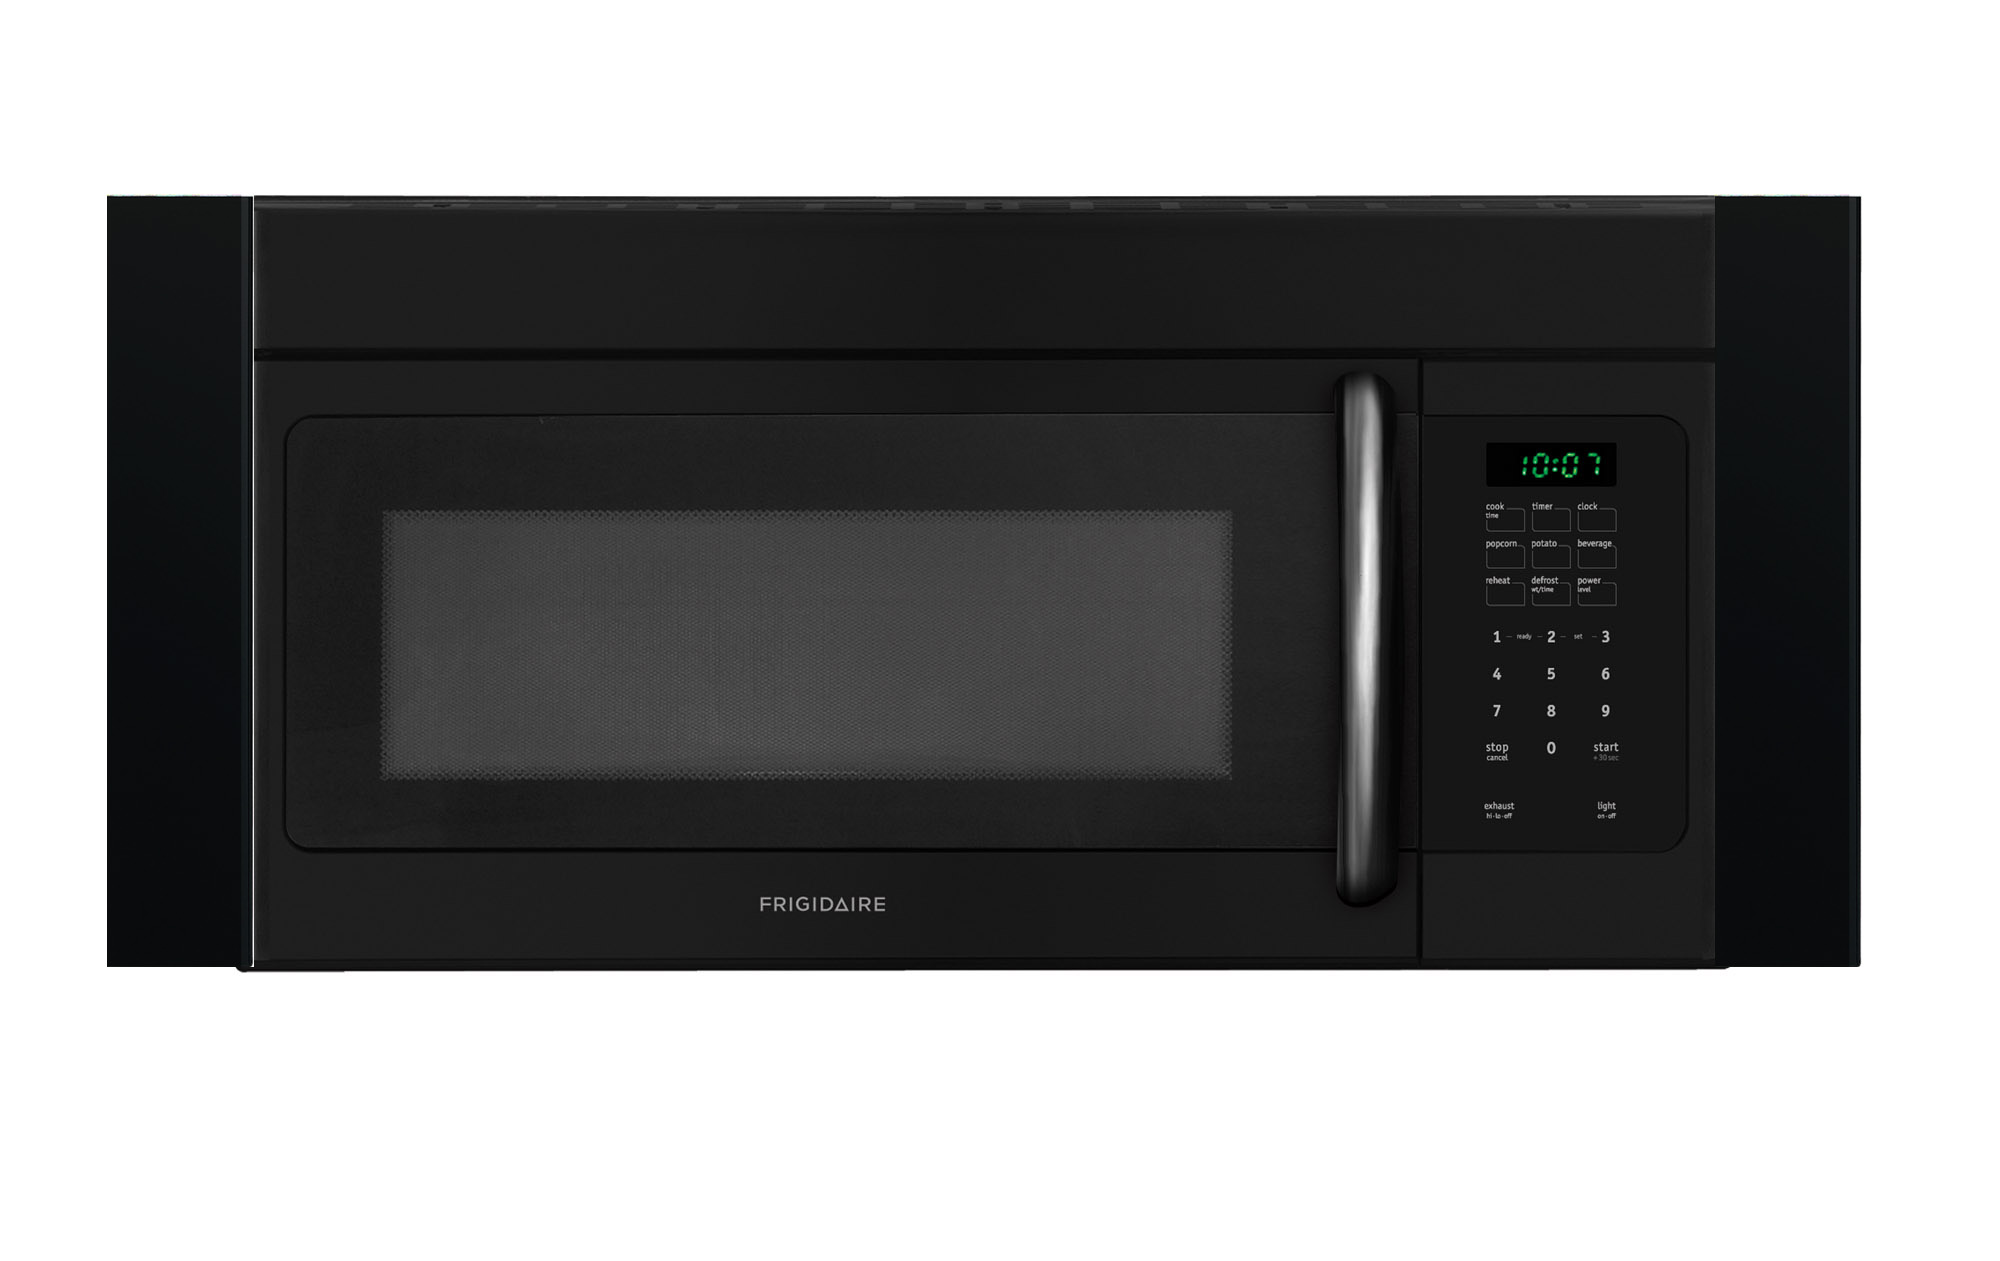 Frigidaire black over the range 36 36 inch microwave ffmv162lb mf3 bl ebay - Red over the range microwave ...